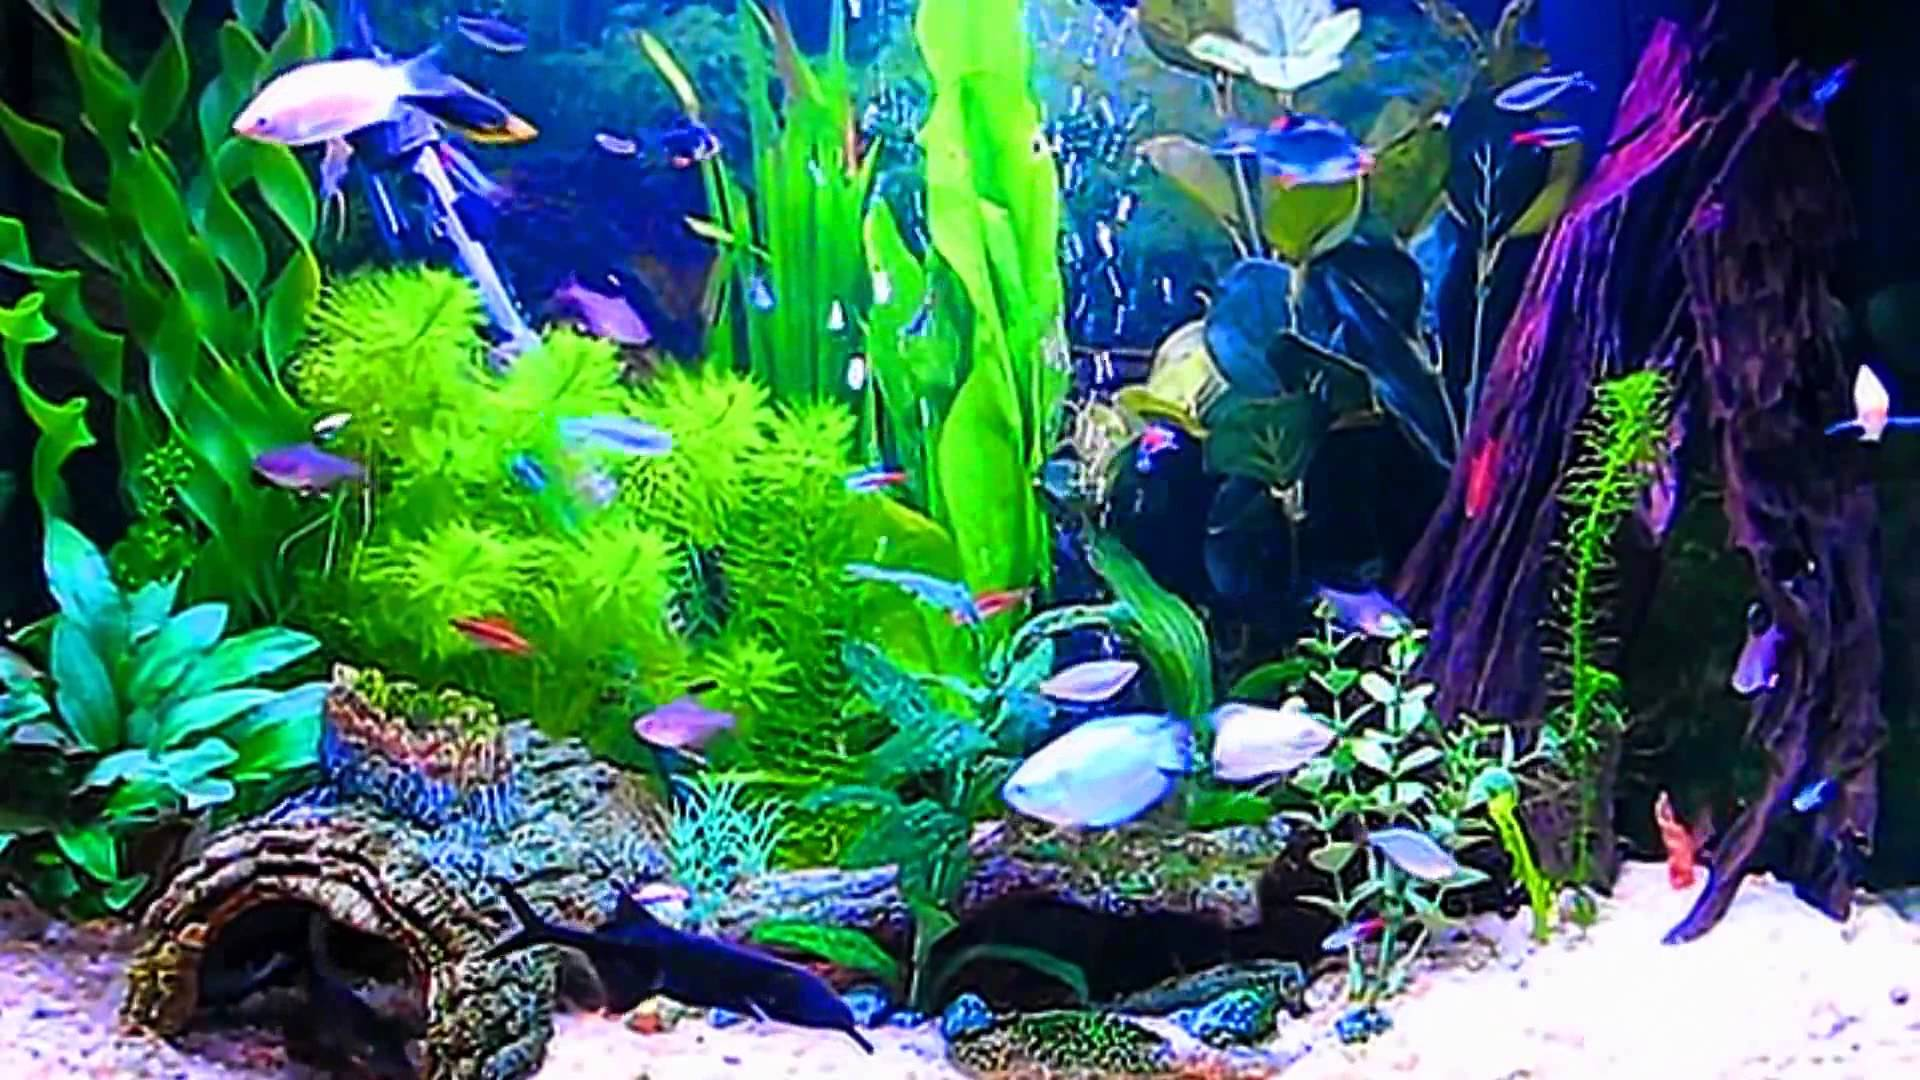 Aquarium screensaver fish tank 1080p hd - Aquarium Hd For Googletv Android Apps On Google Play